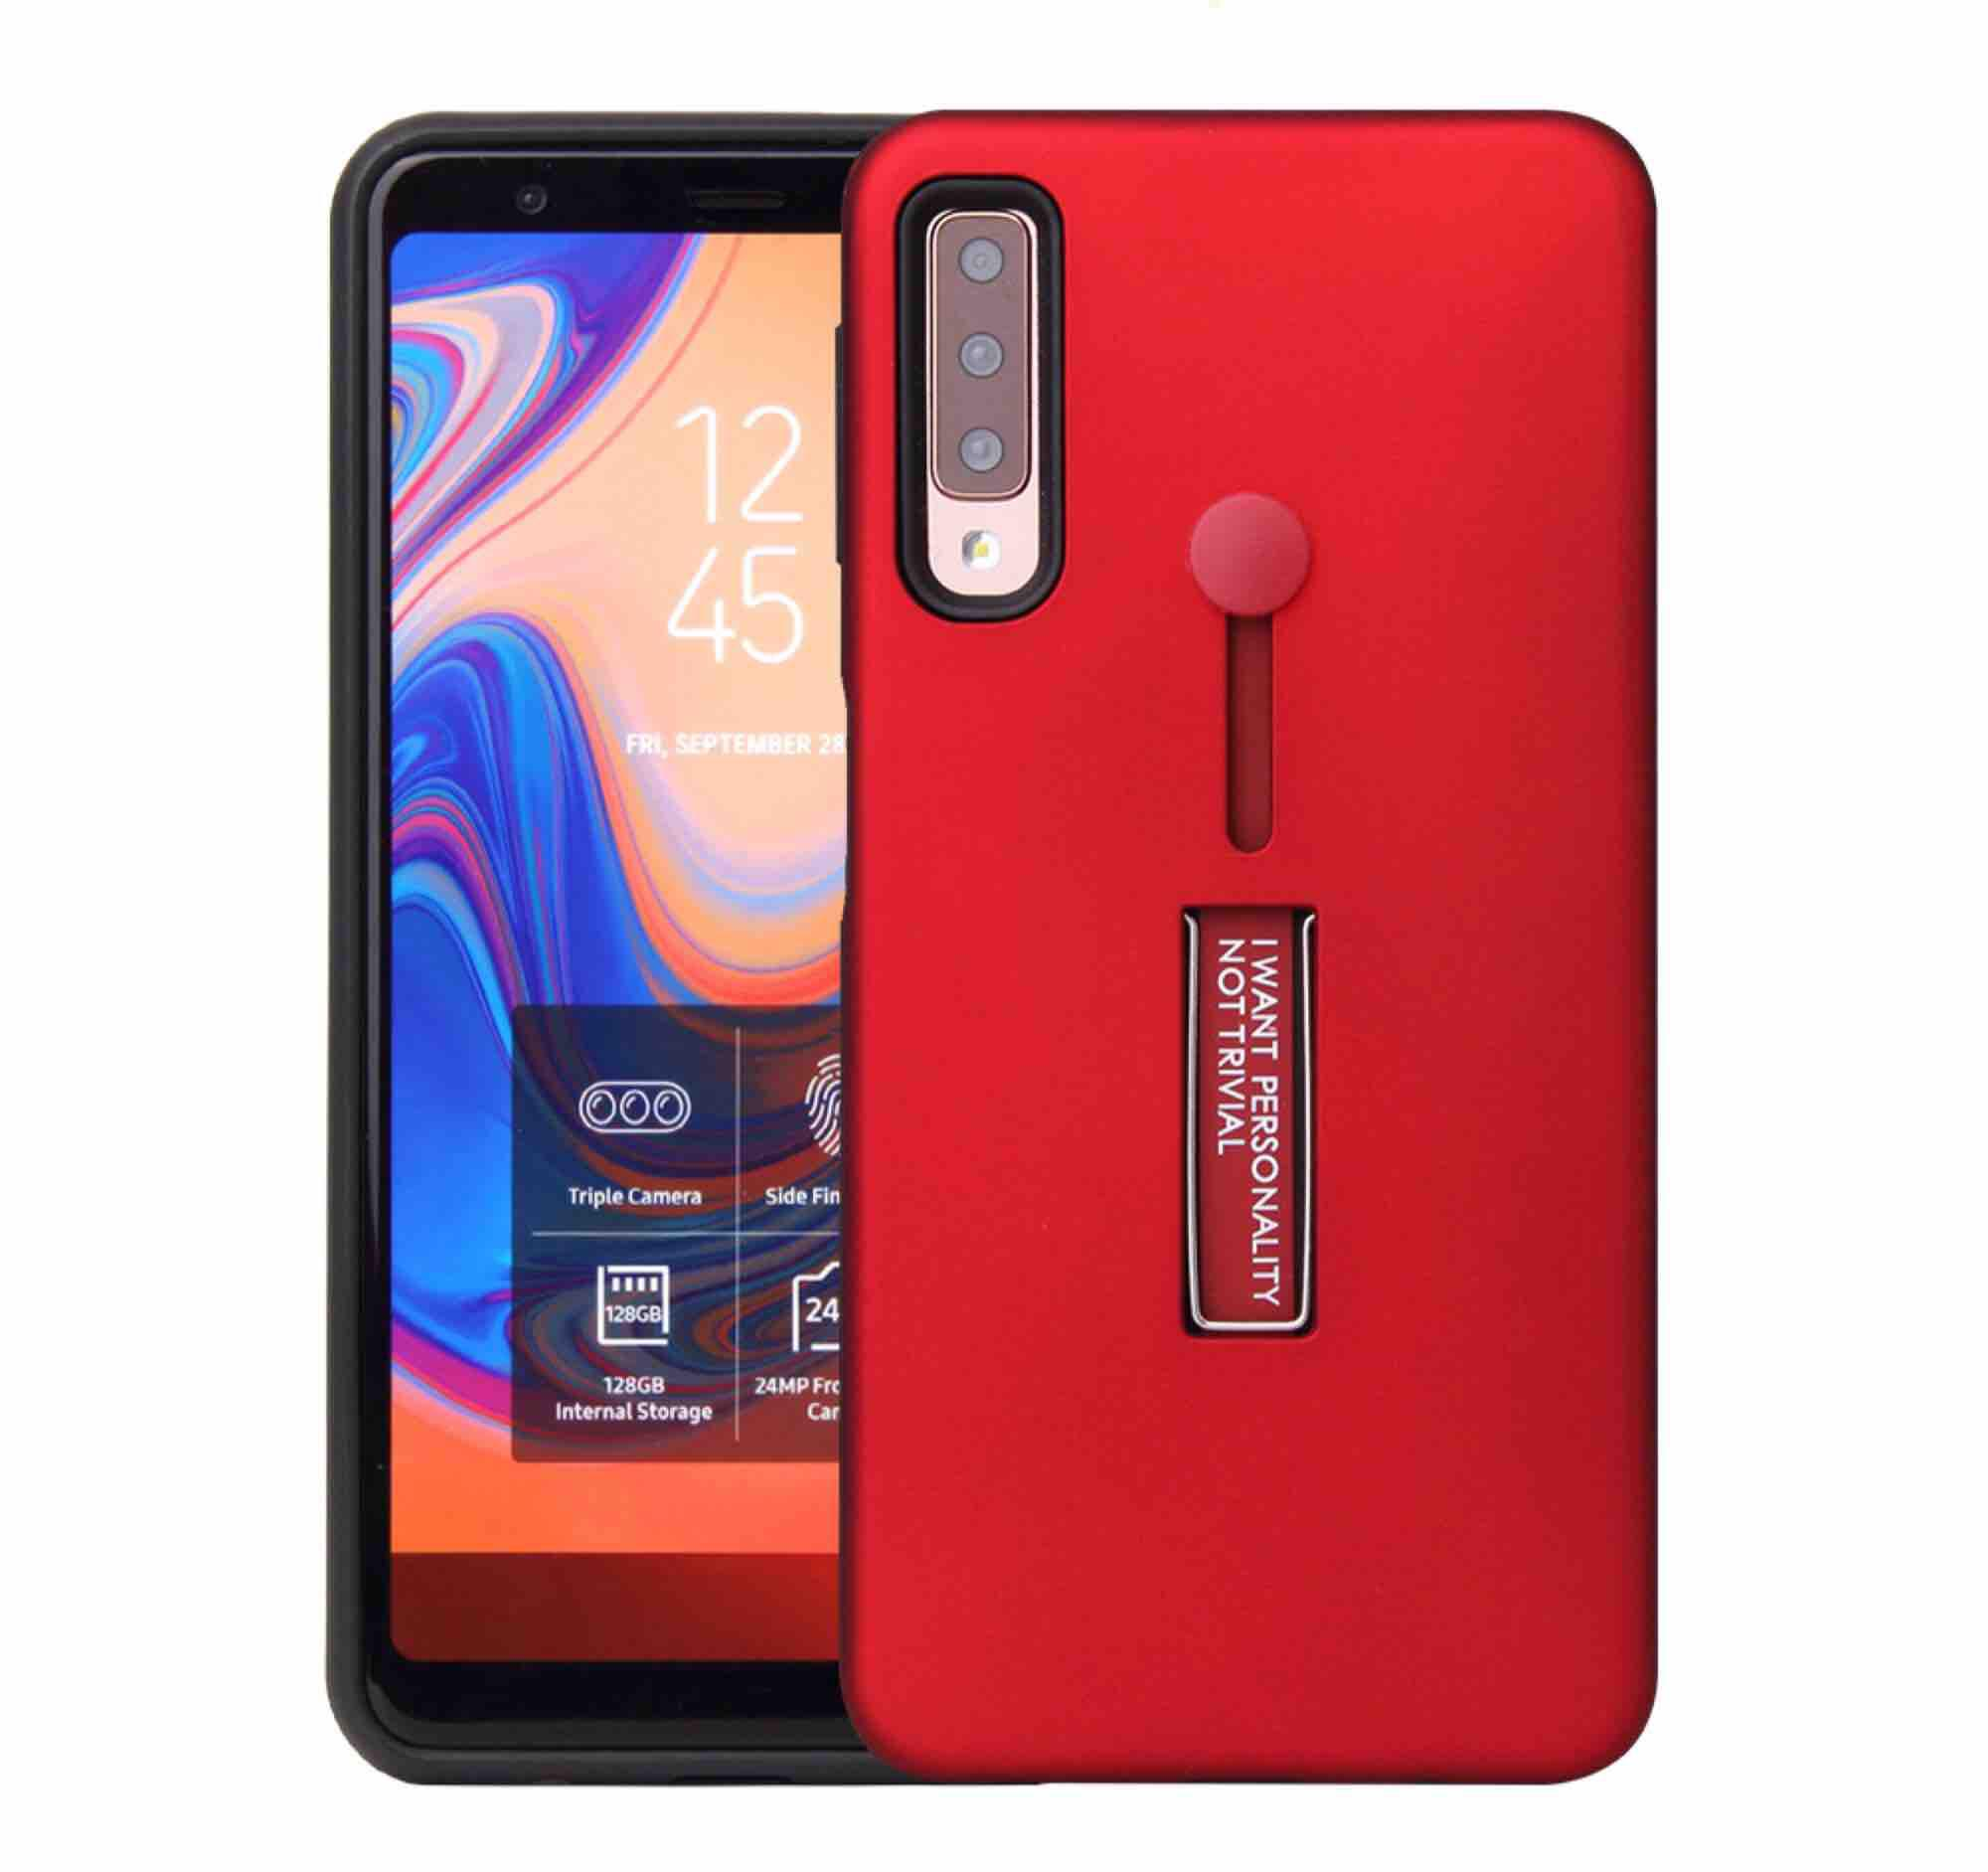 Samsung Philippines - Samsung Phone Cases for sale - prices & reviews | Lazada